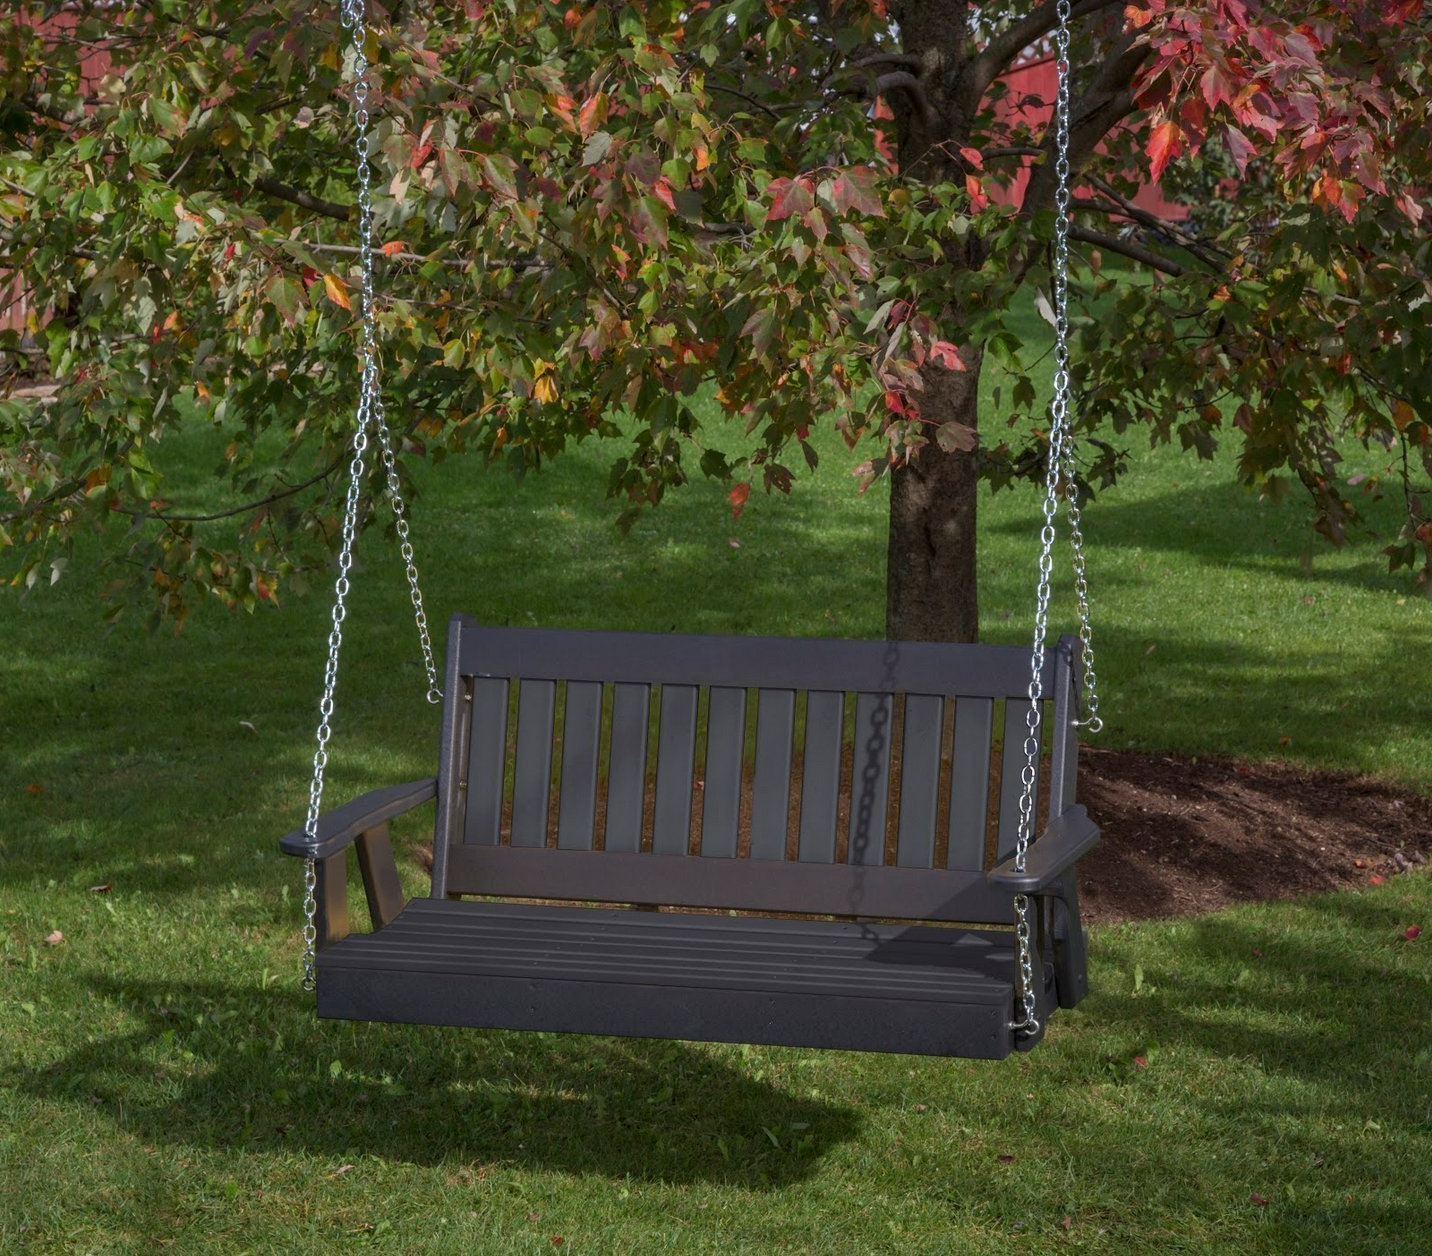 Most Recent Ecommersify Inc 5ft Black Poly Lumber Mission Porch Swing Heavy Duty Everlasting Polytuf Hdpe – Made In Usa – Amish Crafted With Vineyard 2 Person Black Recycled Plastic Outdoor Swings (View 5 of 30)